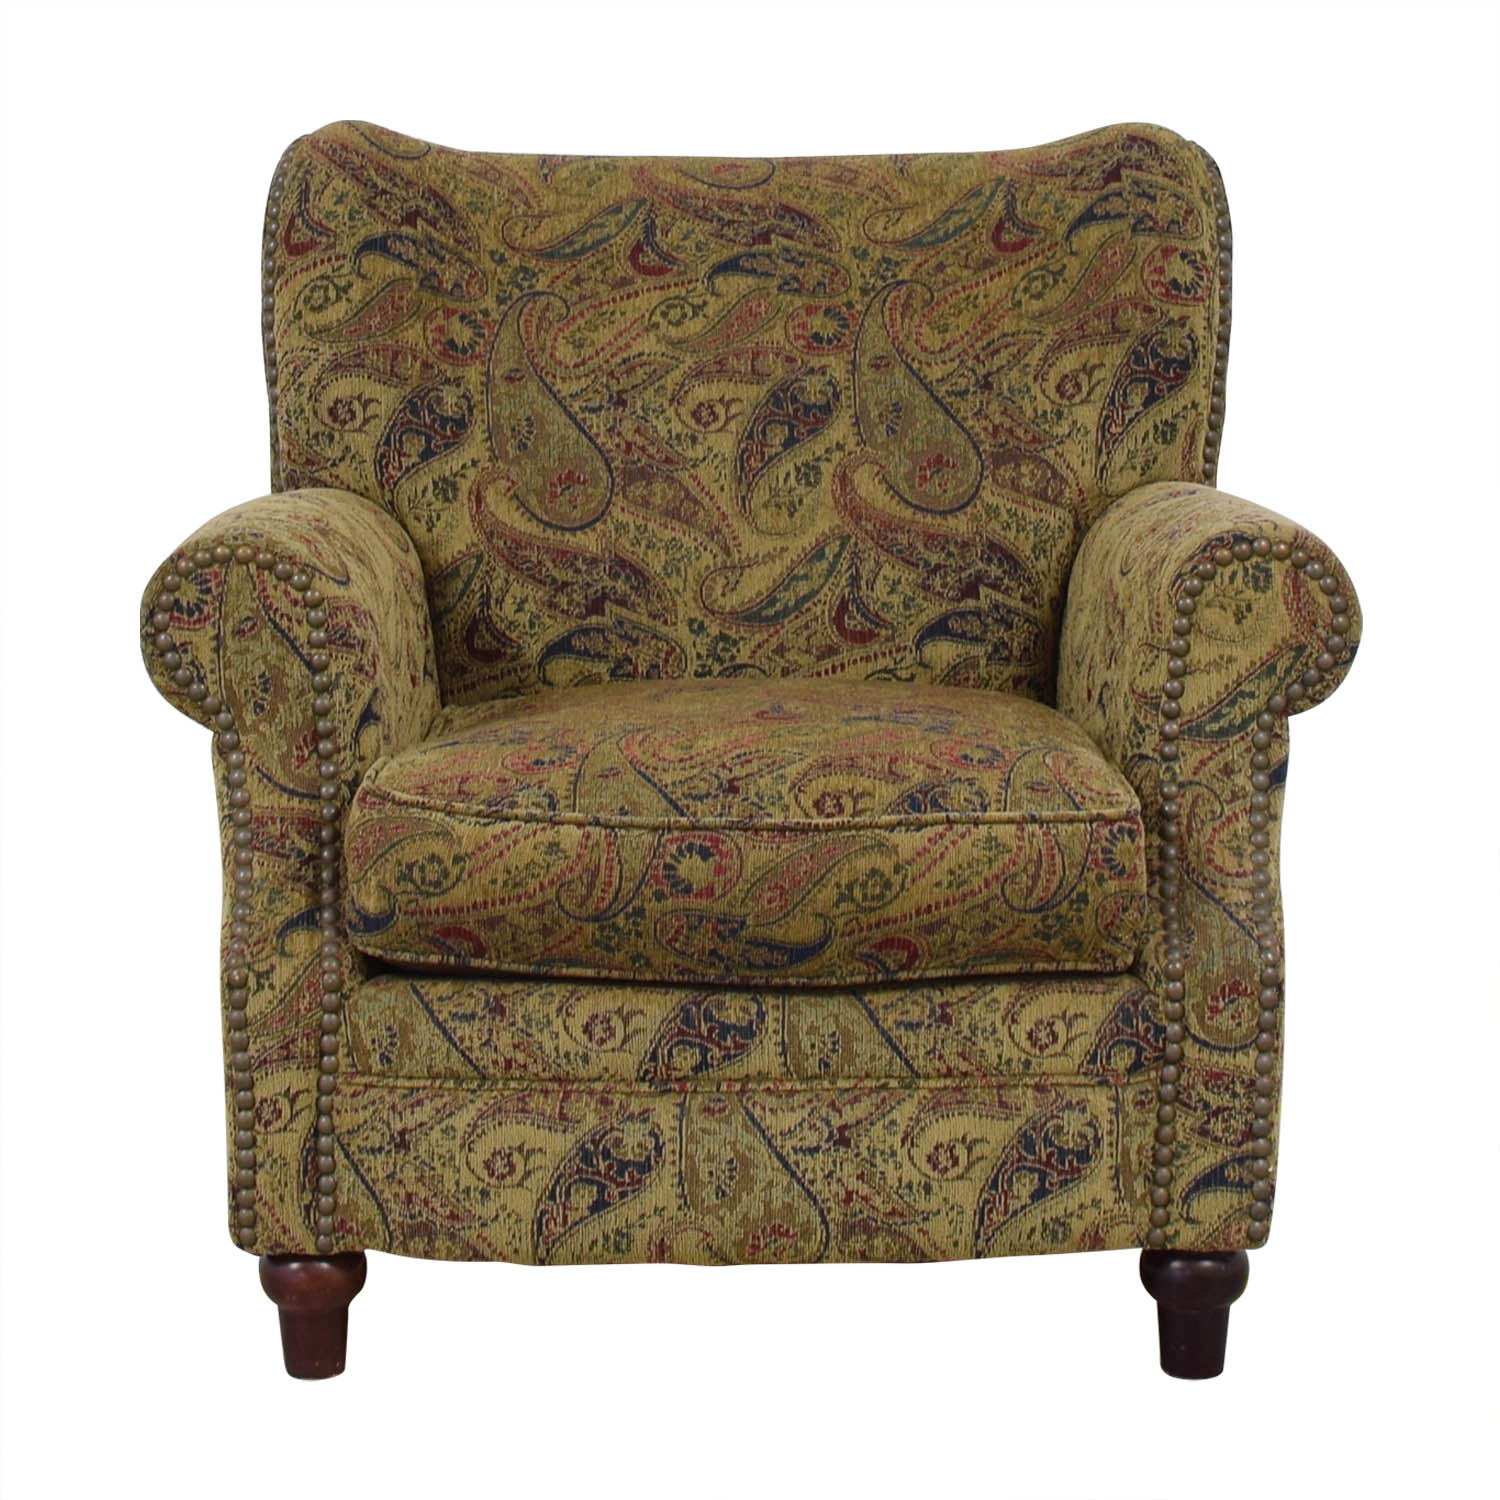 Rowe Furniture Nailhead Paisley Accent Chair sale